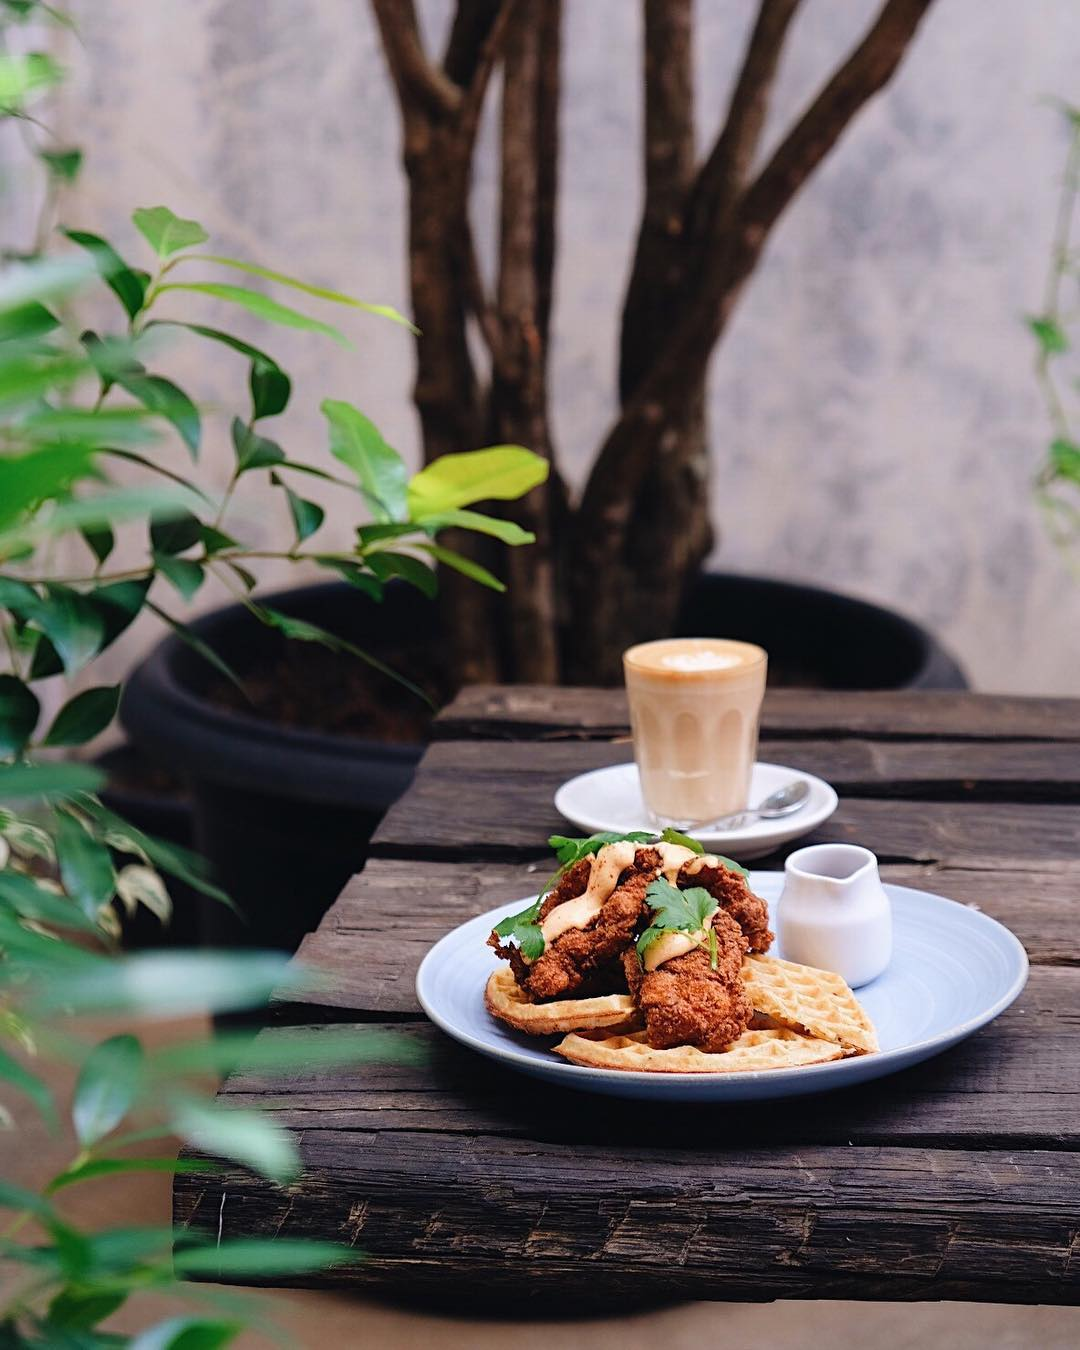 Two Hands Full, Two Hands Full Bandung, Bandung, Kota Bandung, Dolan Dolen, Dolaners Two Hands Full via taipeifoodie - Dolan Dolen